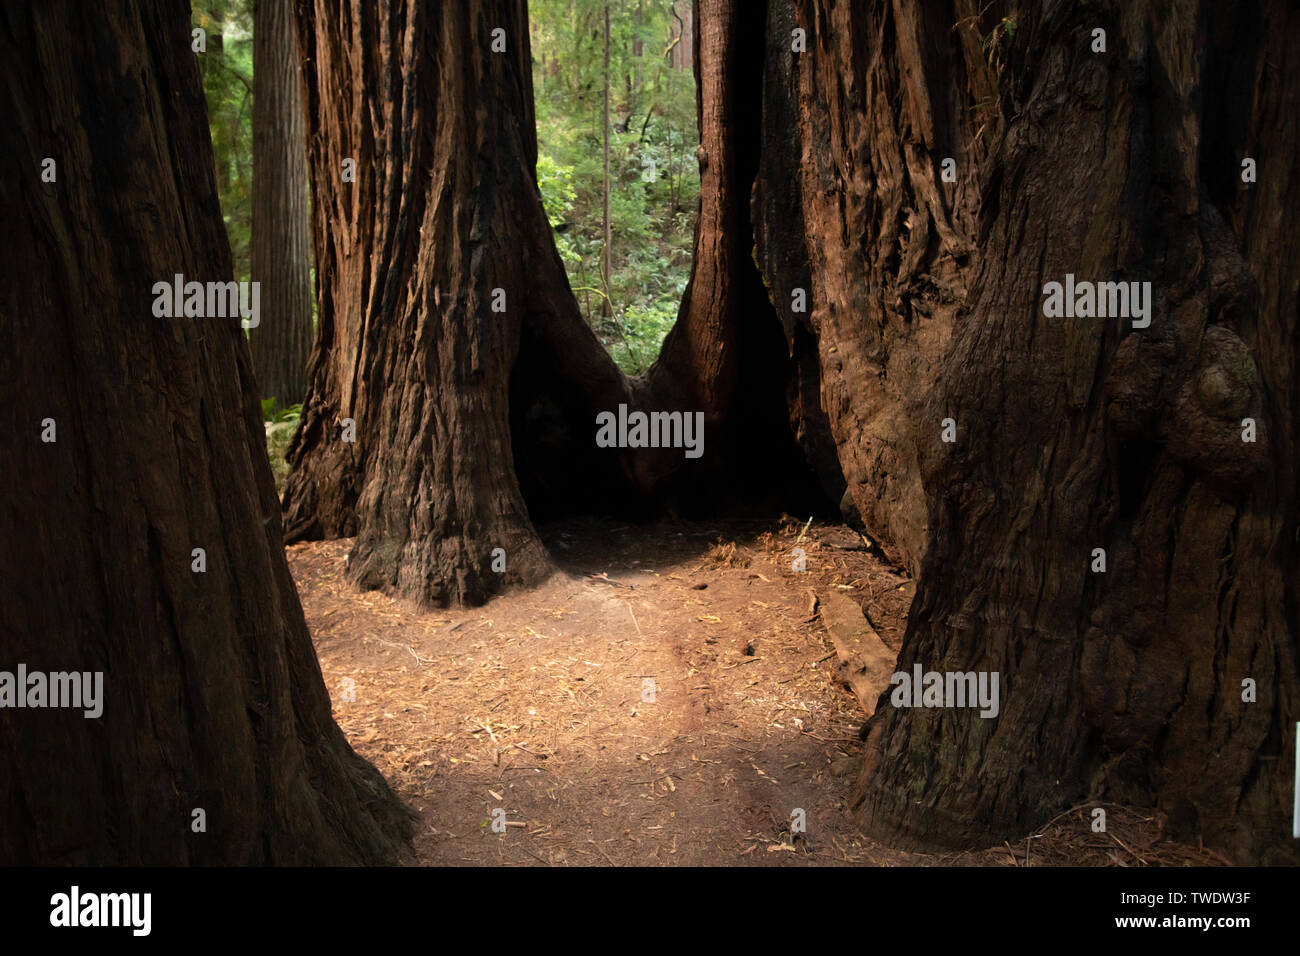 Closer view of Redwood Tree stumps in Muir Woods National Park. - Stock Image